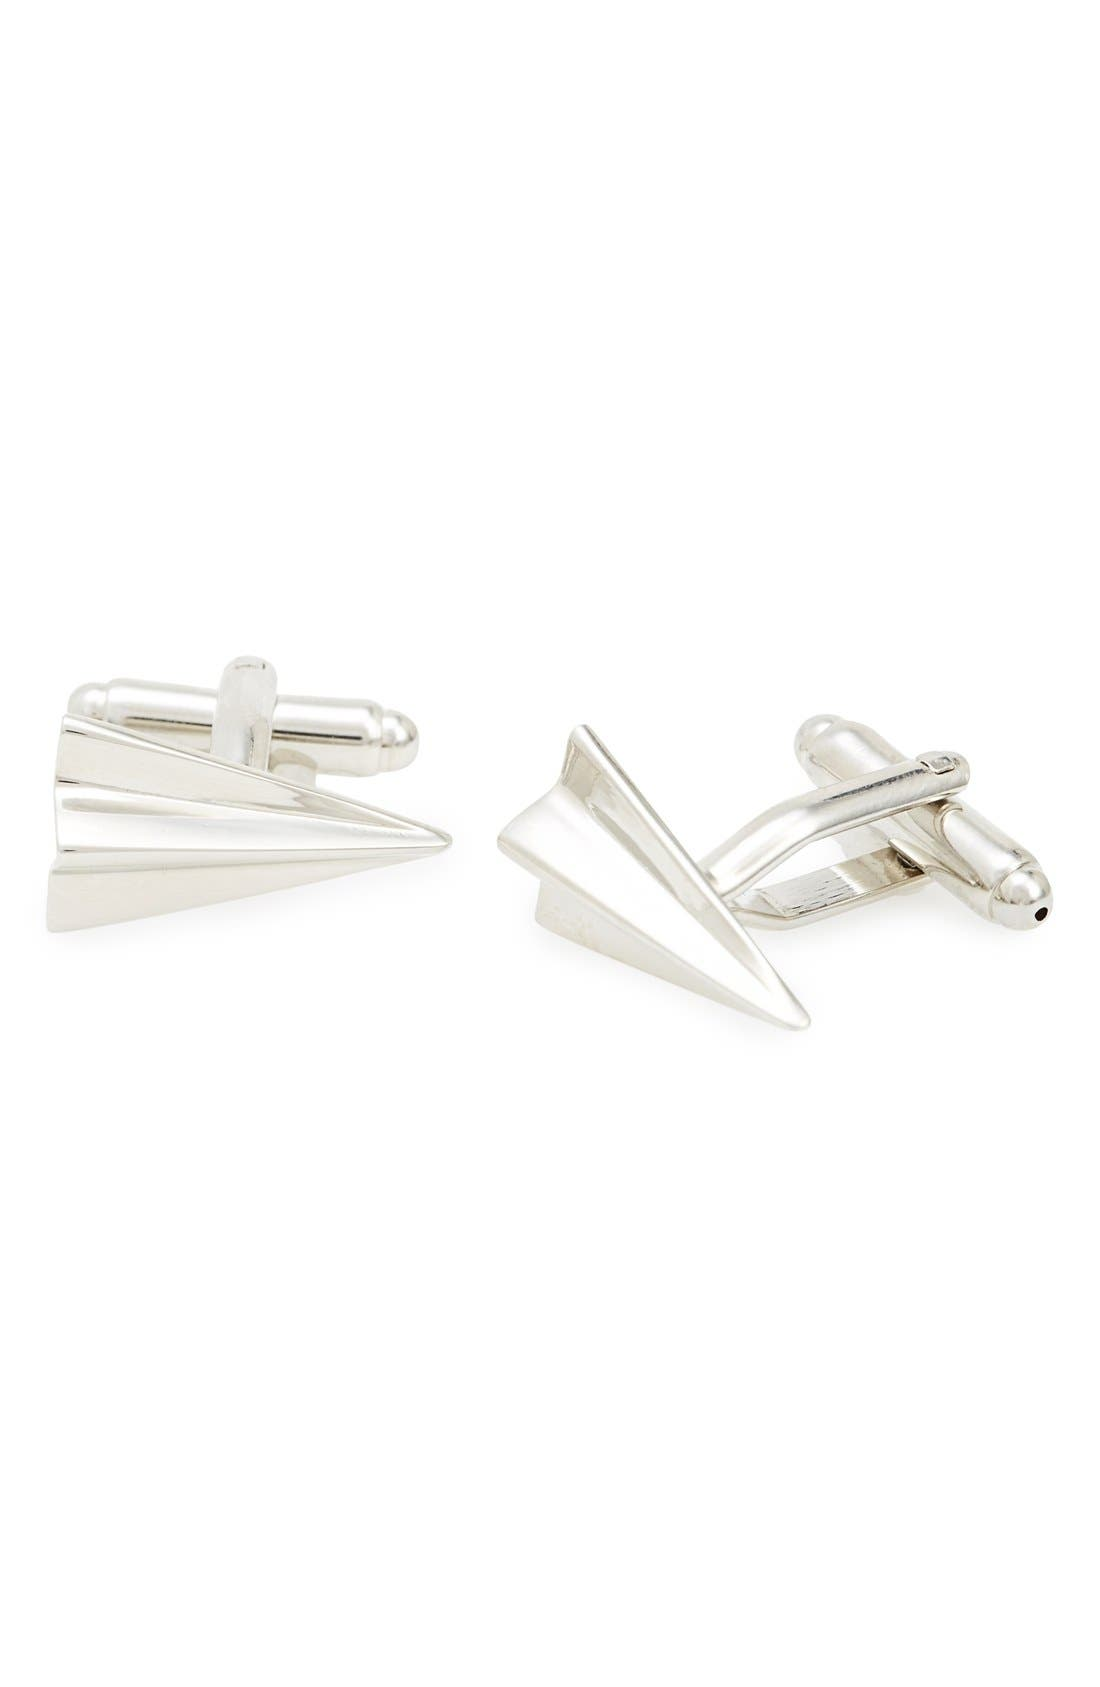 'Paper Airplane' Cuff Links,                             Main thumbnail 1, color,                             Silver